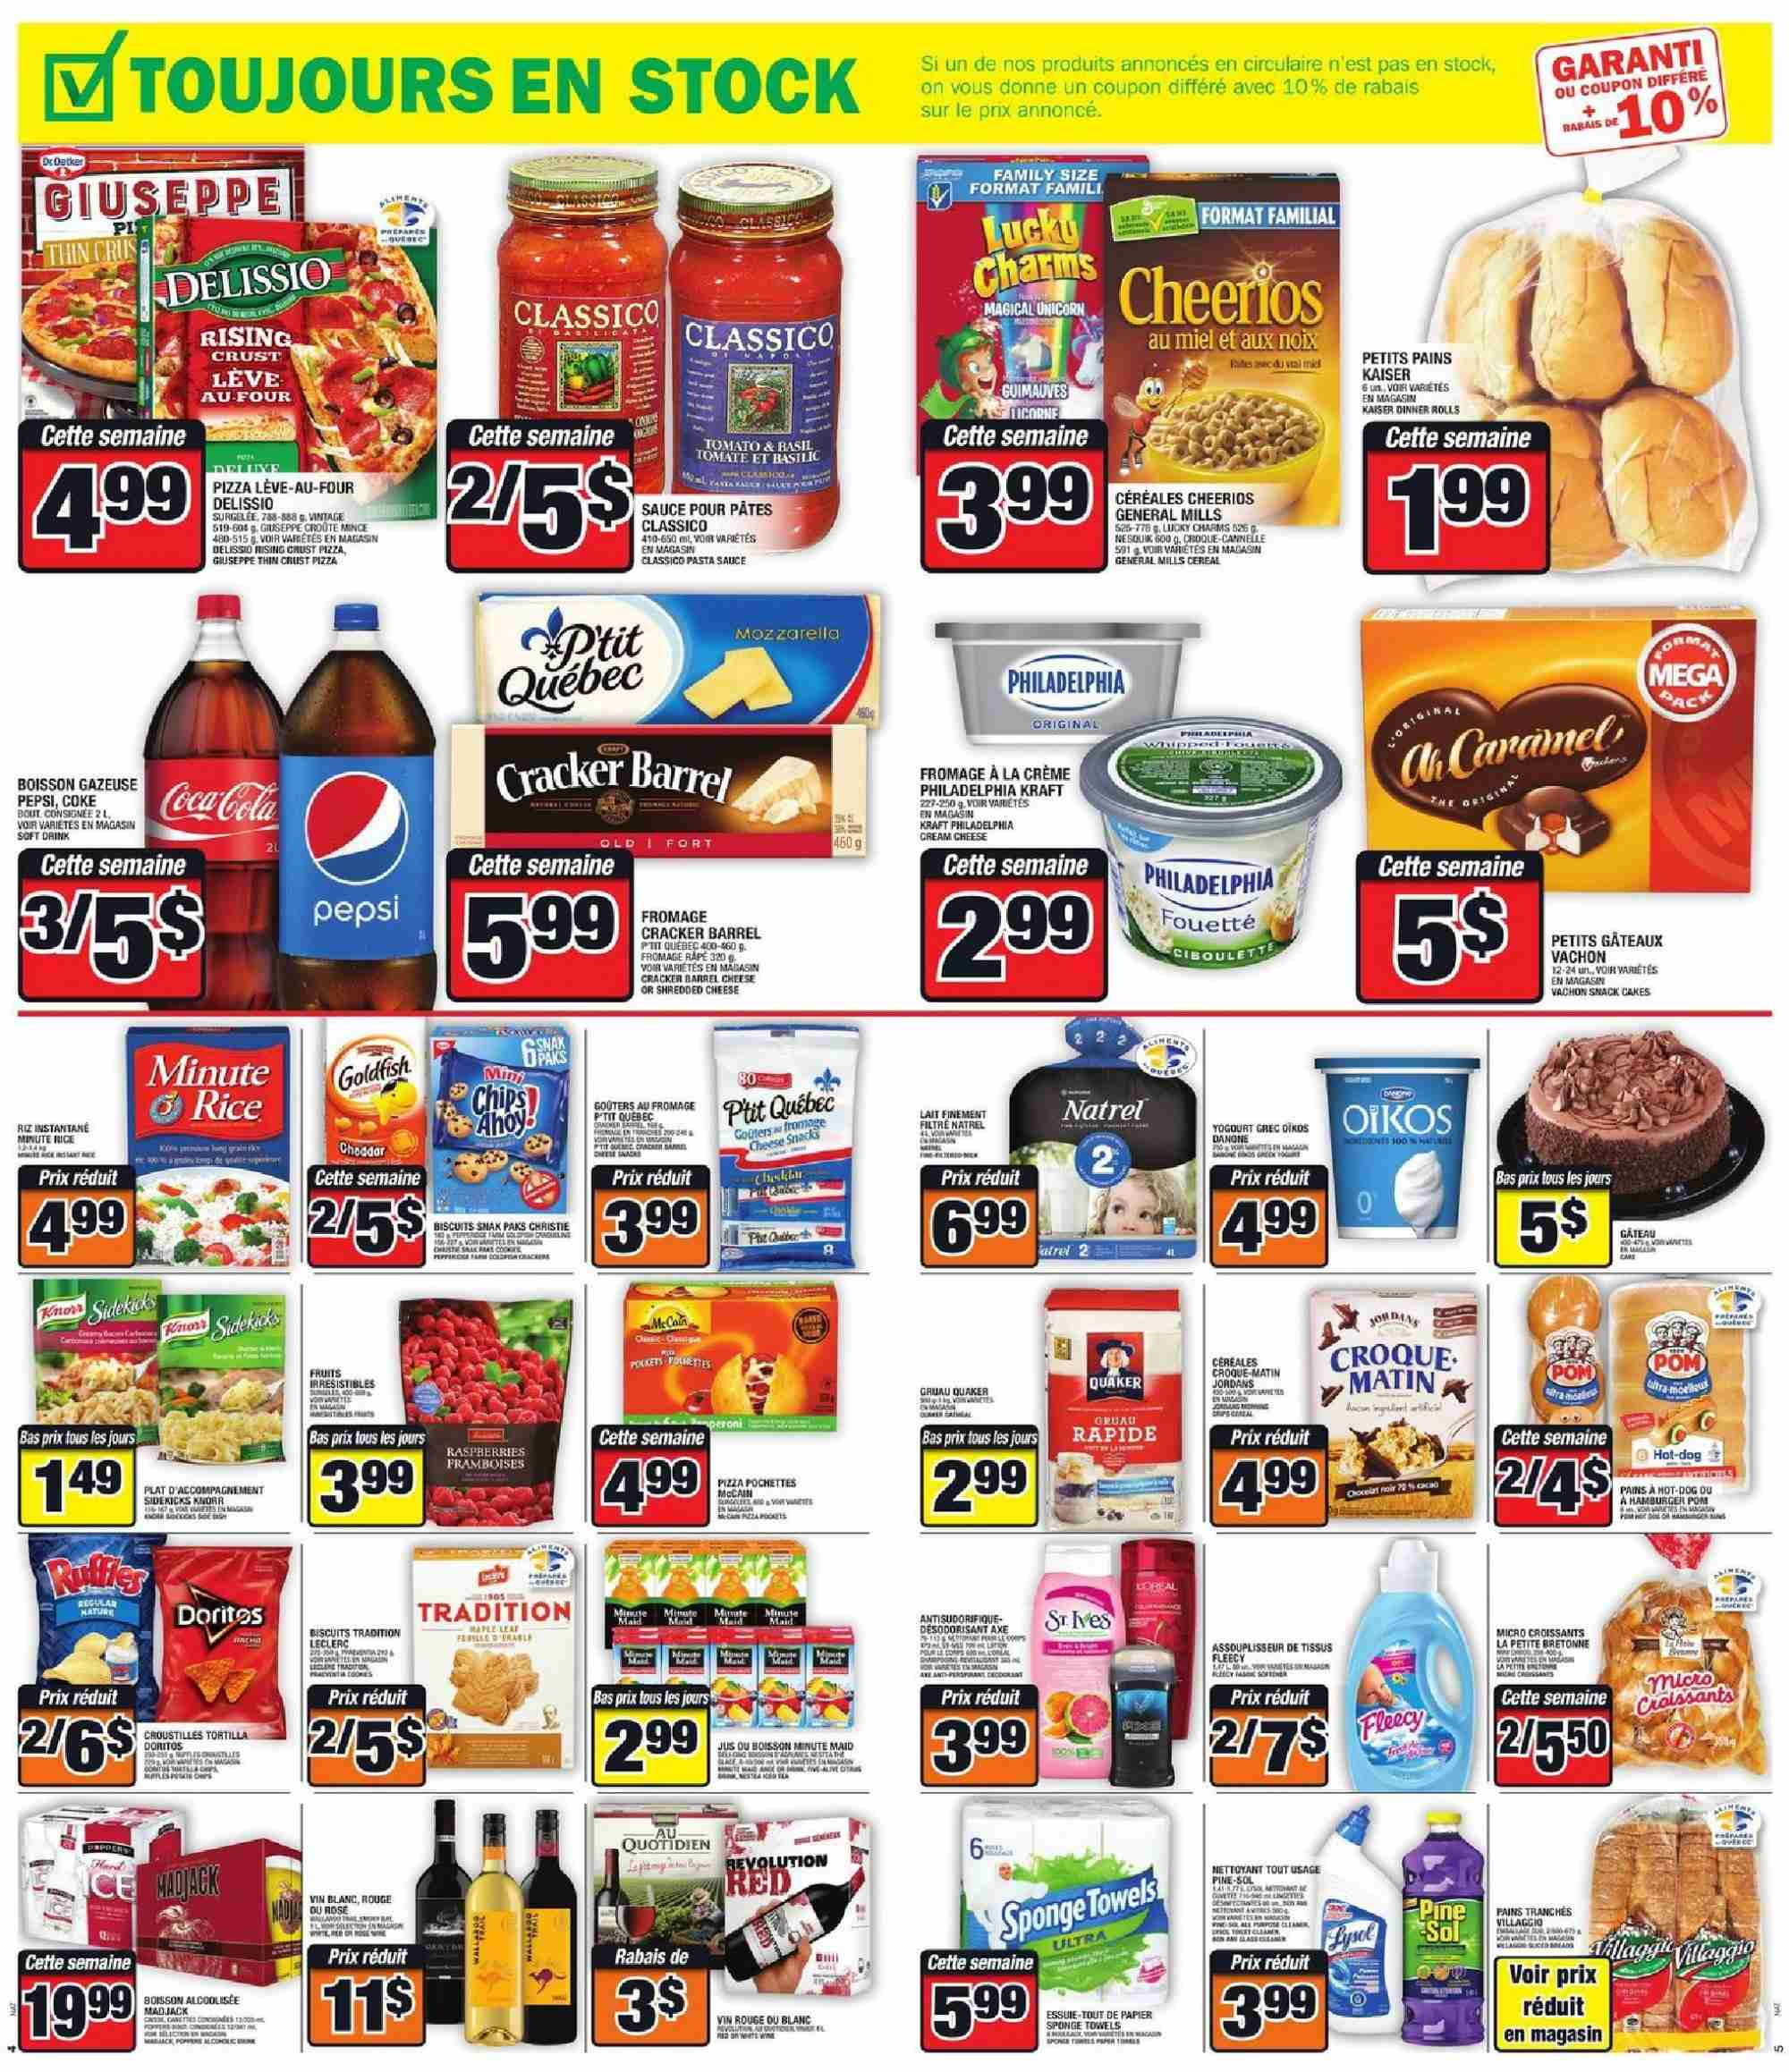 Super C Flyer - October 11, 2018 - October 17, 2018 - Sales products - axe, biscuits, cereals, coca cola, cream, cream cheese, crème, croissants, dinner rolls, mozzarella, rice, shredded cheese, hat, philadelphia, pizza, cheerios, pasta sauce, pepsi, cheese, snack, cereal, pasta, cracker, sauce, lait, biscuit, boisson, cannelle, desodorisant, four, fromage, mot, nettoyeur, pochette, râpé, rouge, pâtes. Page 3.